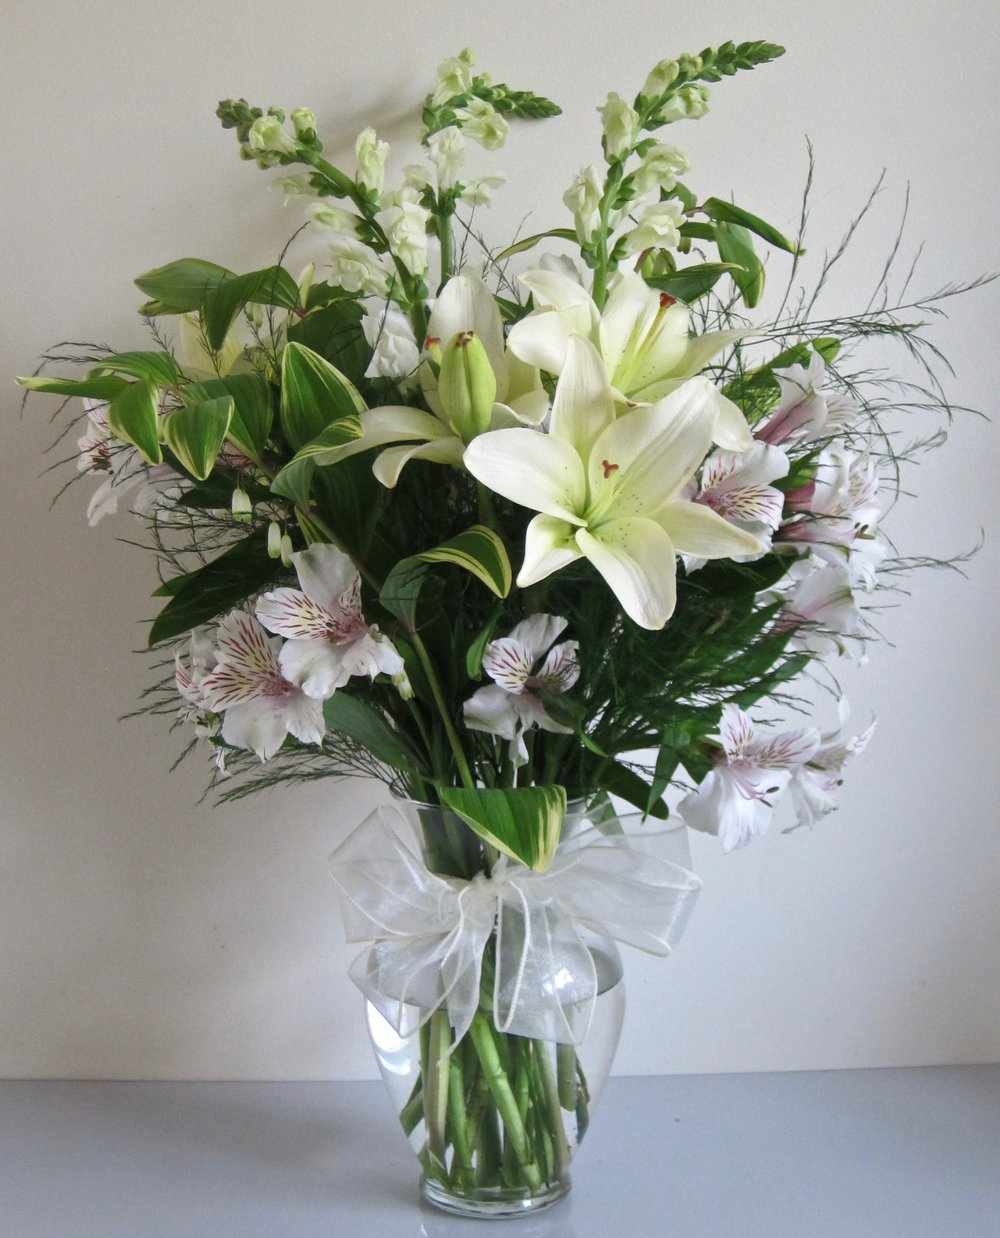 GREEN & WHITE   Bouquet featuring lilies, snapdragons, solomon's seal, ferns and alstroemeria,  $55.